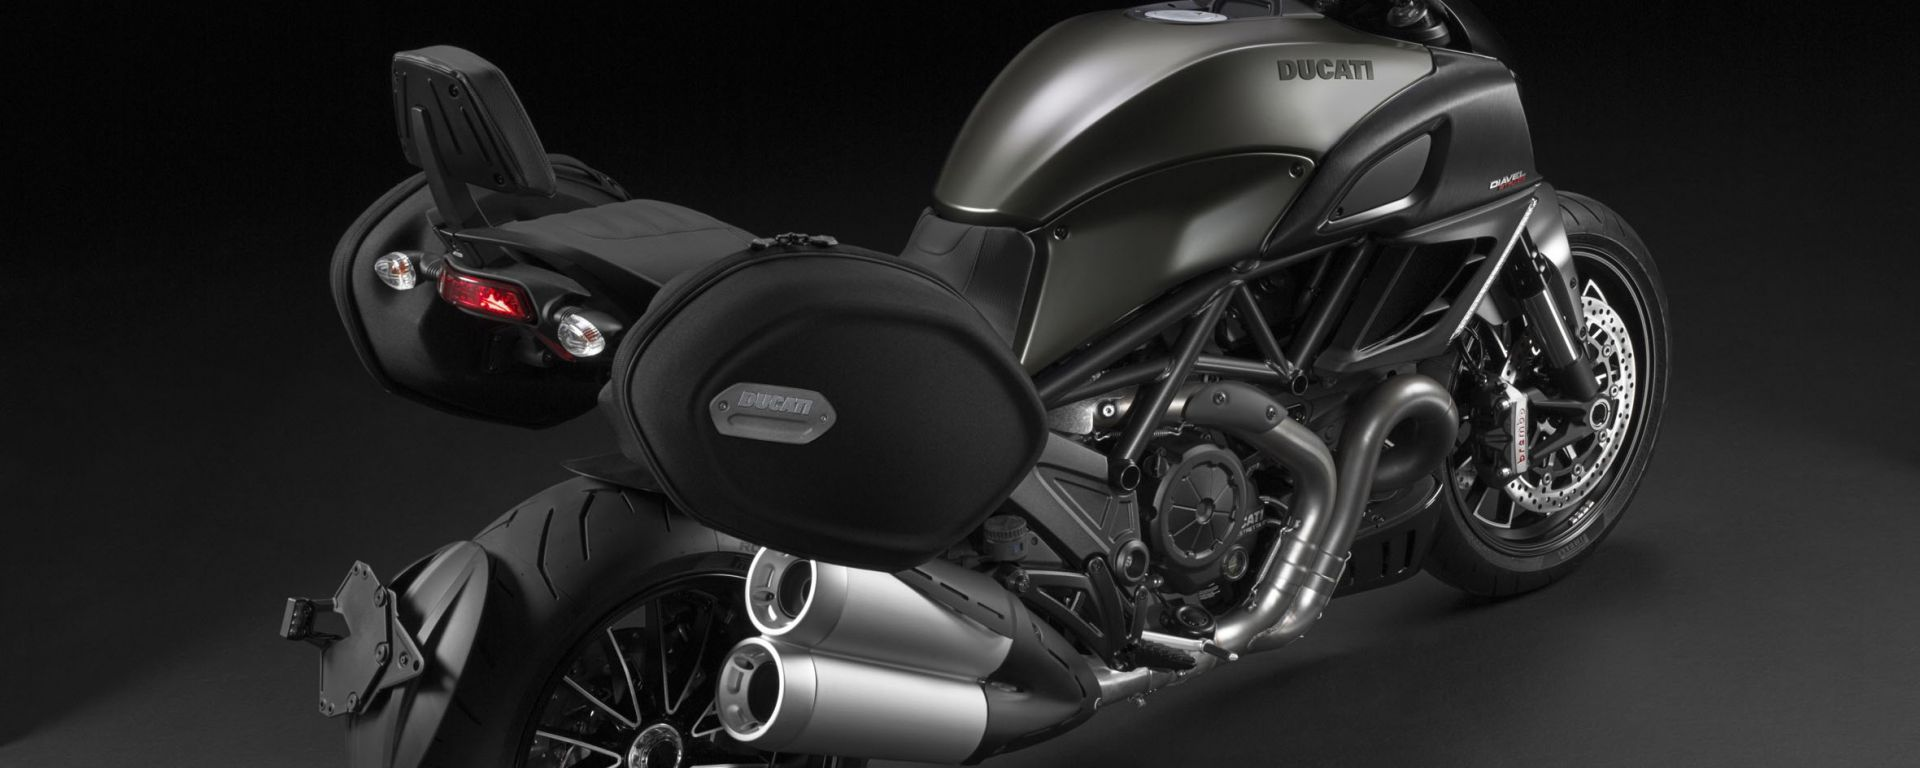 Ducati Diavel Strada 2013, anche in video